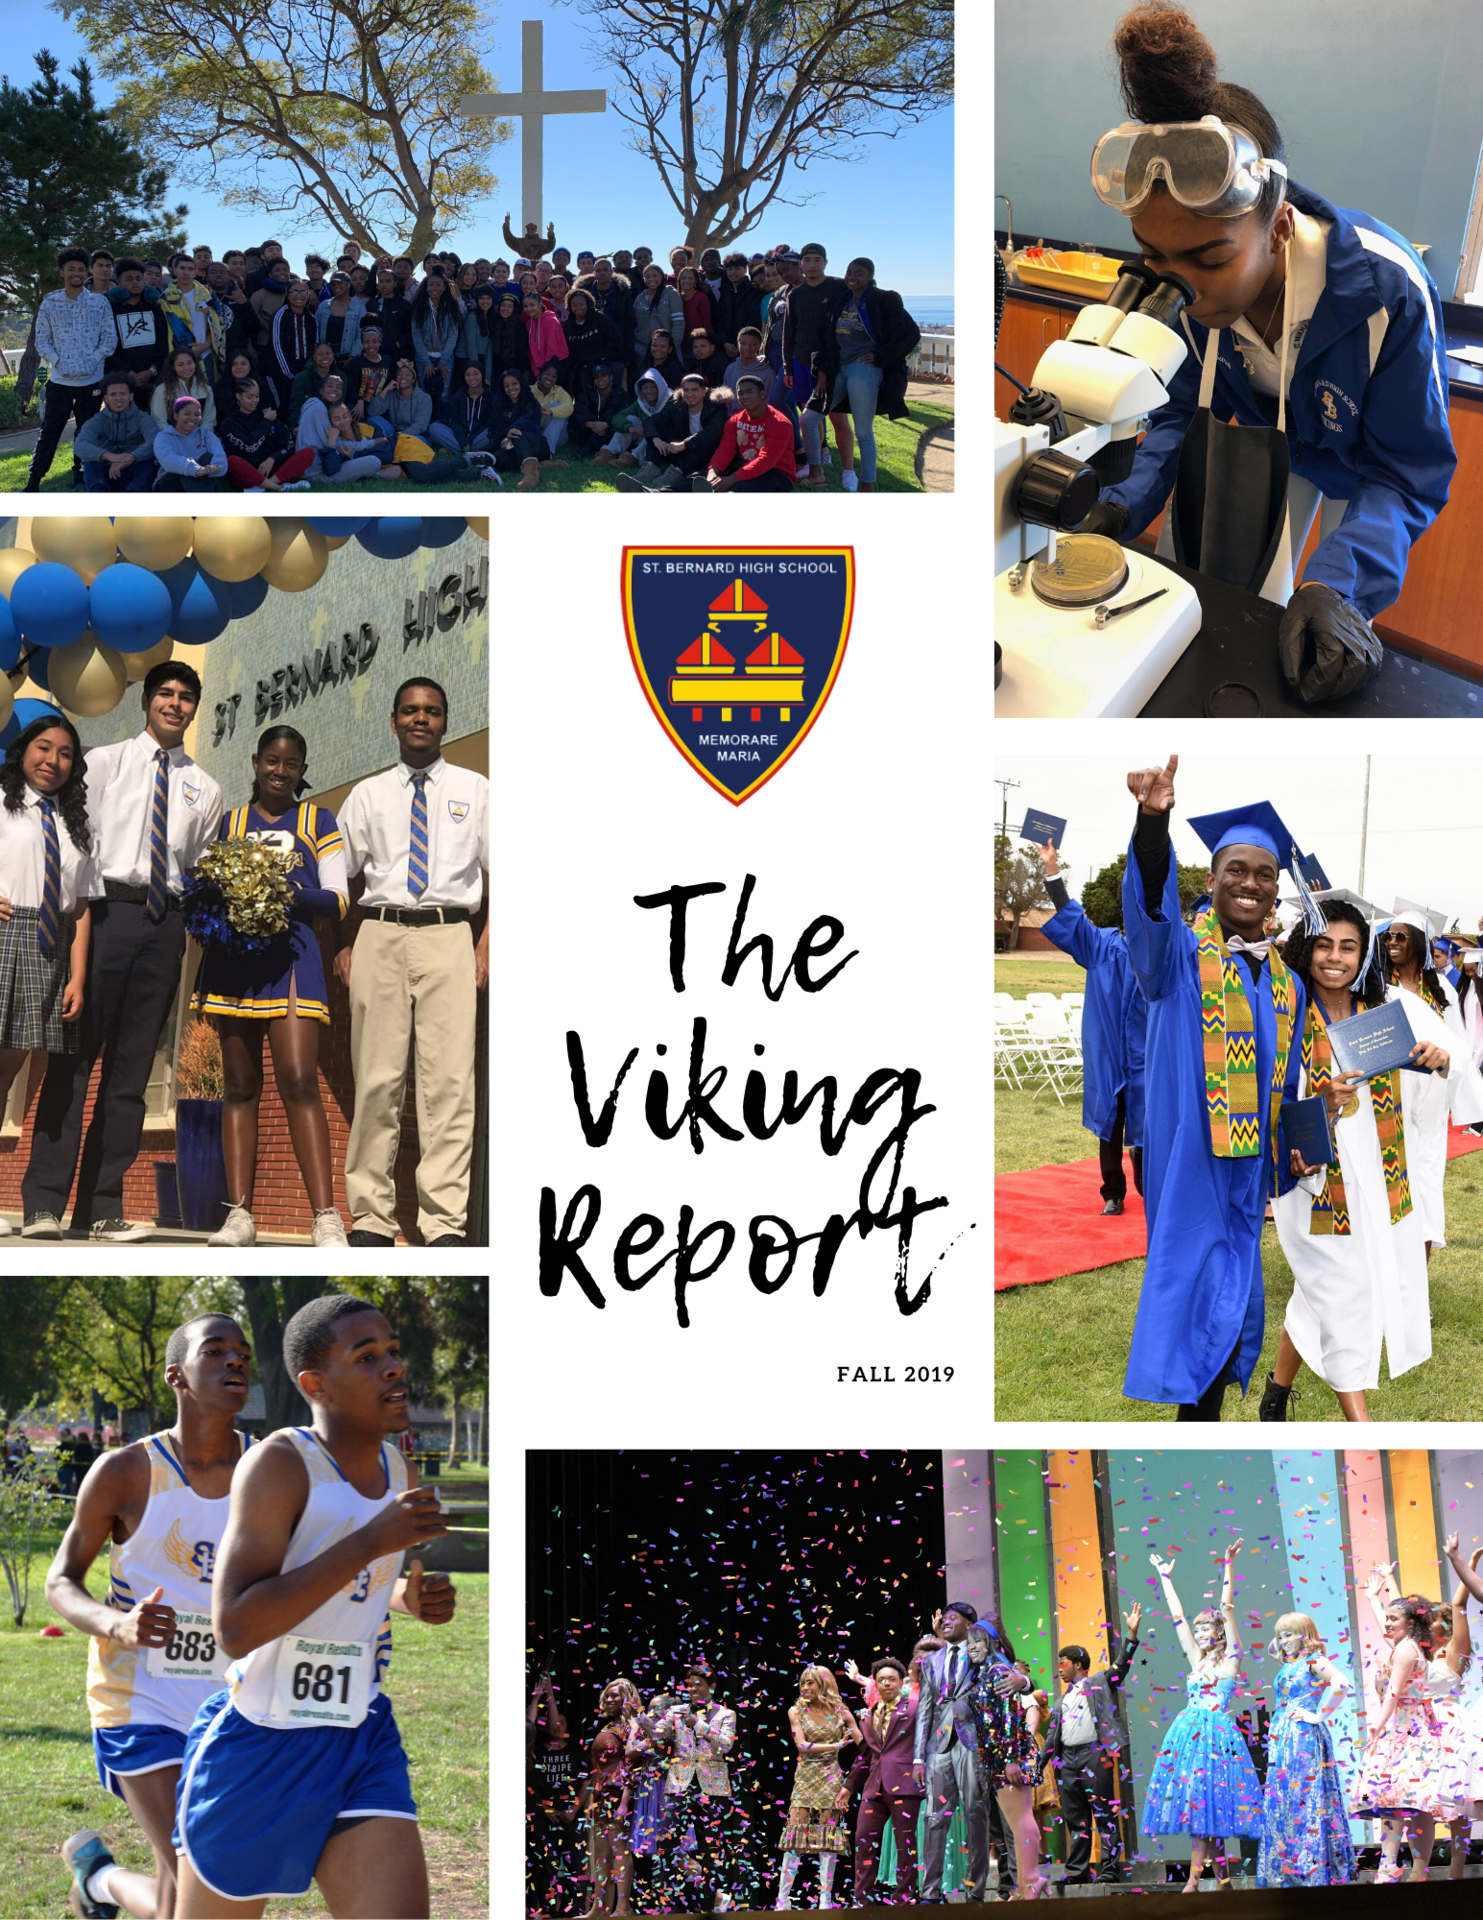 Viking Report